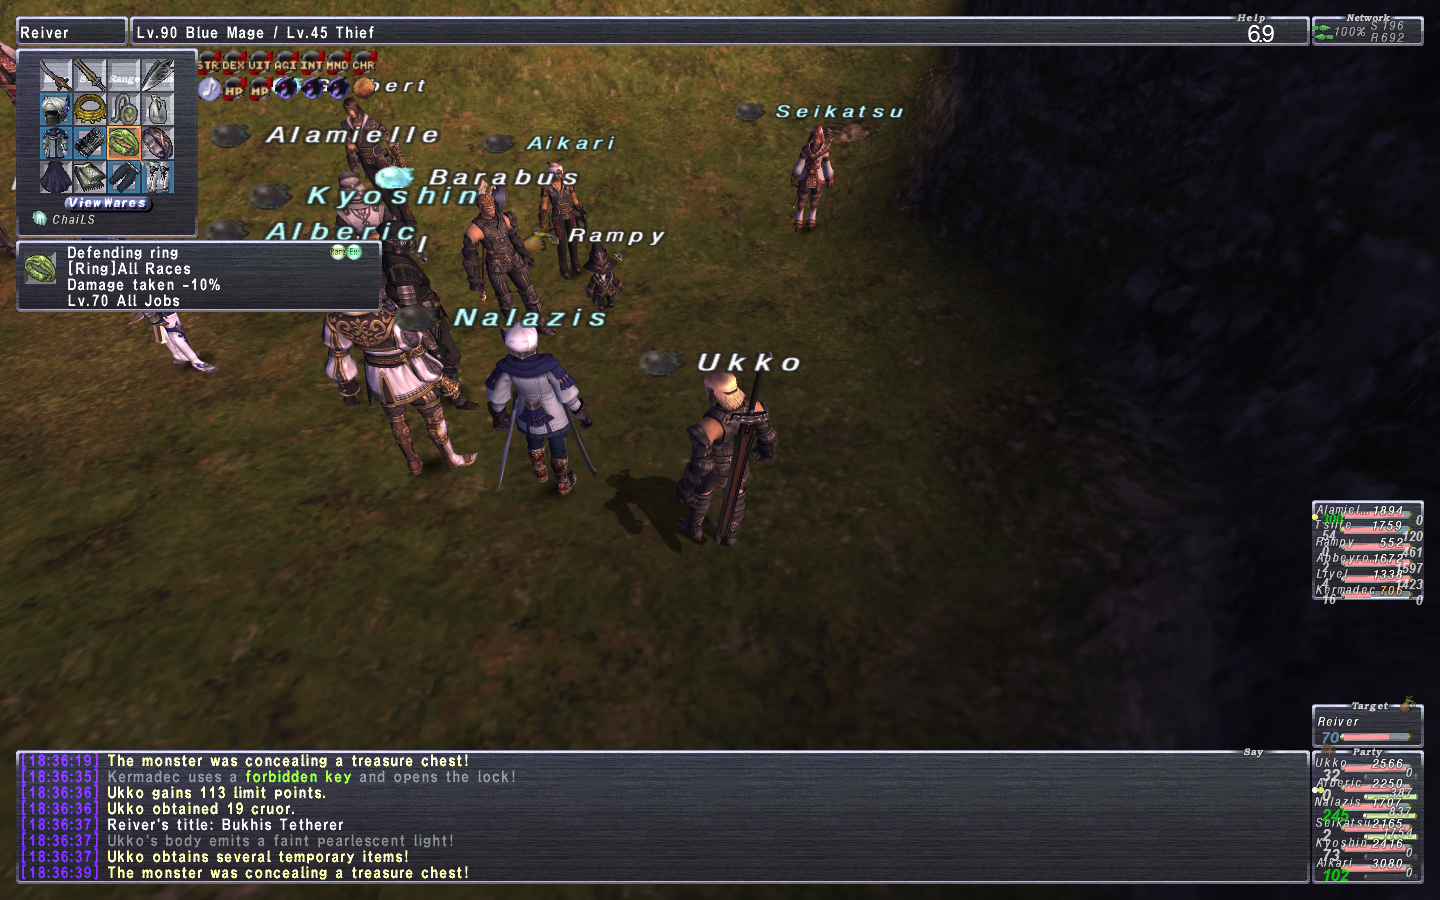 lyall ffxi gear lv78 wear stand cares leech dolls xxii thread literally player make pics renzys gimpleeches long taking shots screen point fast killing presuming lv90s contribute mobs gonna vtit listed mooch damage contribution tier this play gimpconfusedwtf contributions